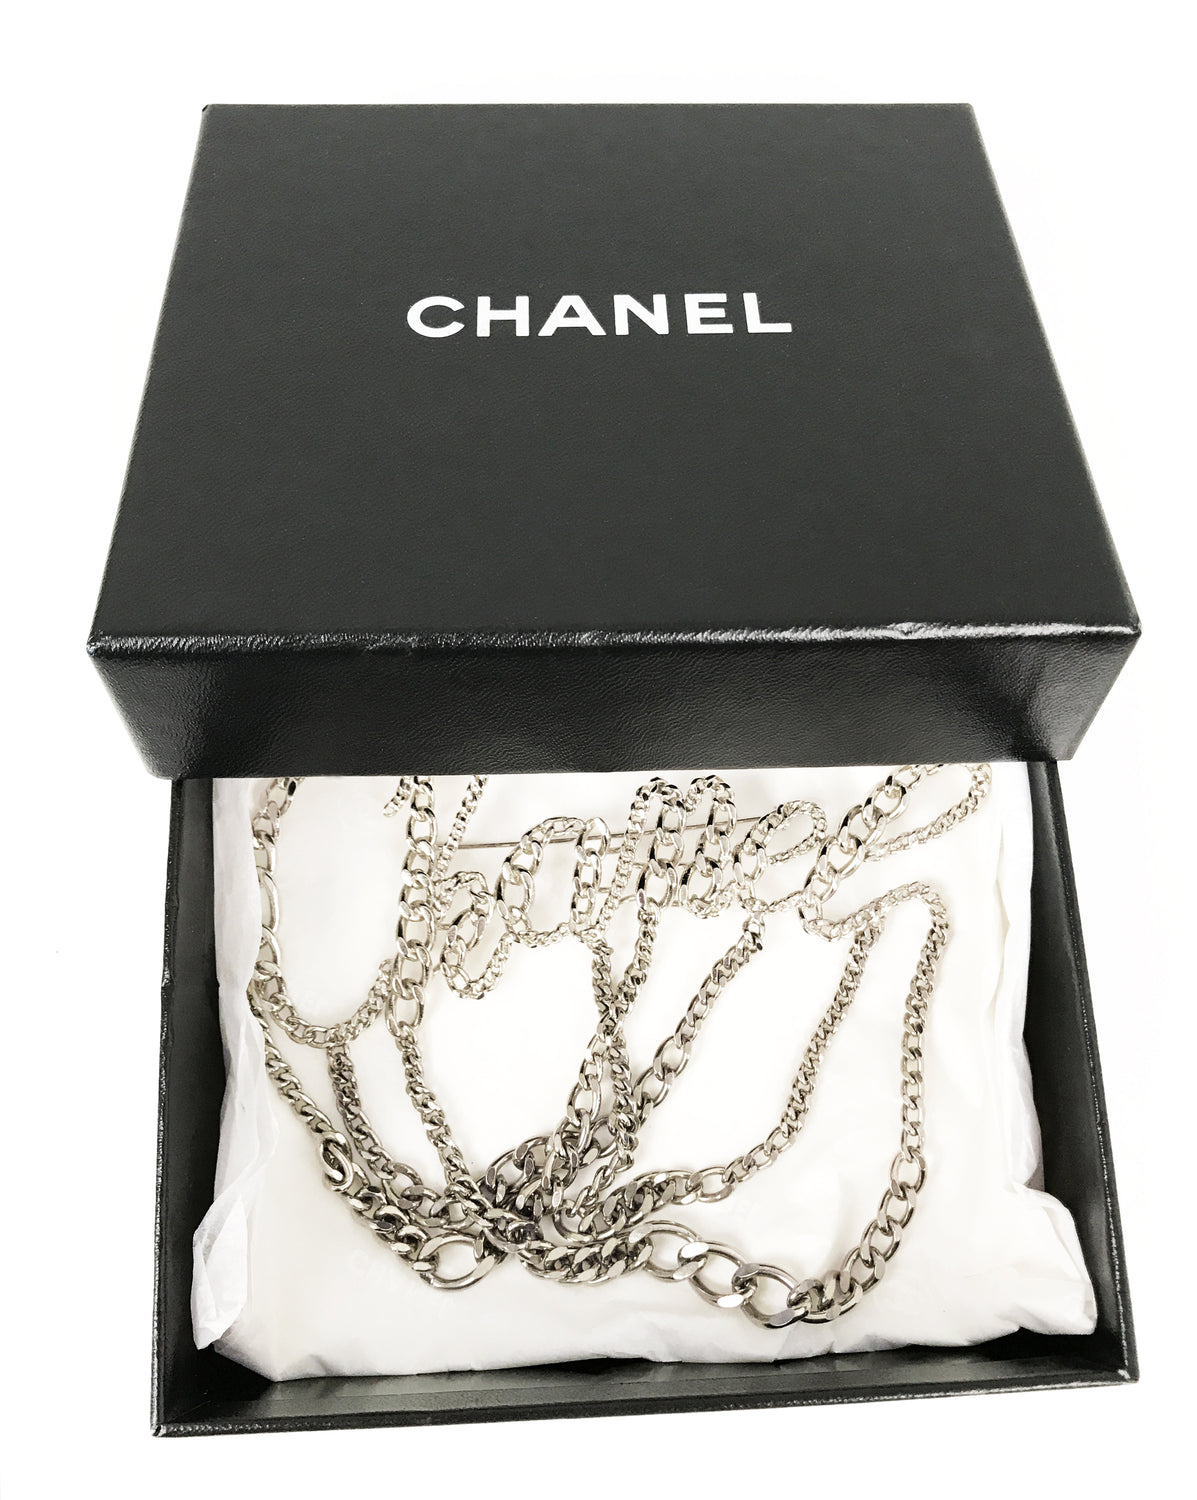 FRUIT Vintage Chanel Chain text logo brooch 2006 Karl Lagerfeld